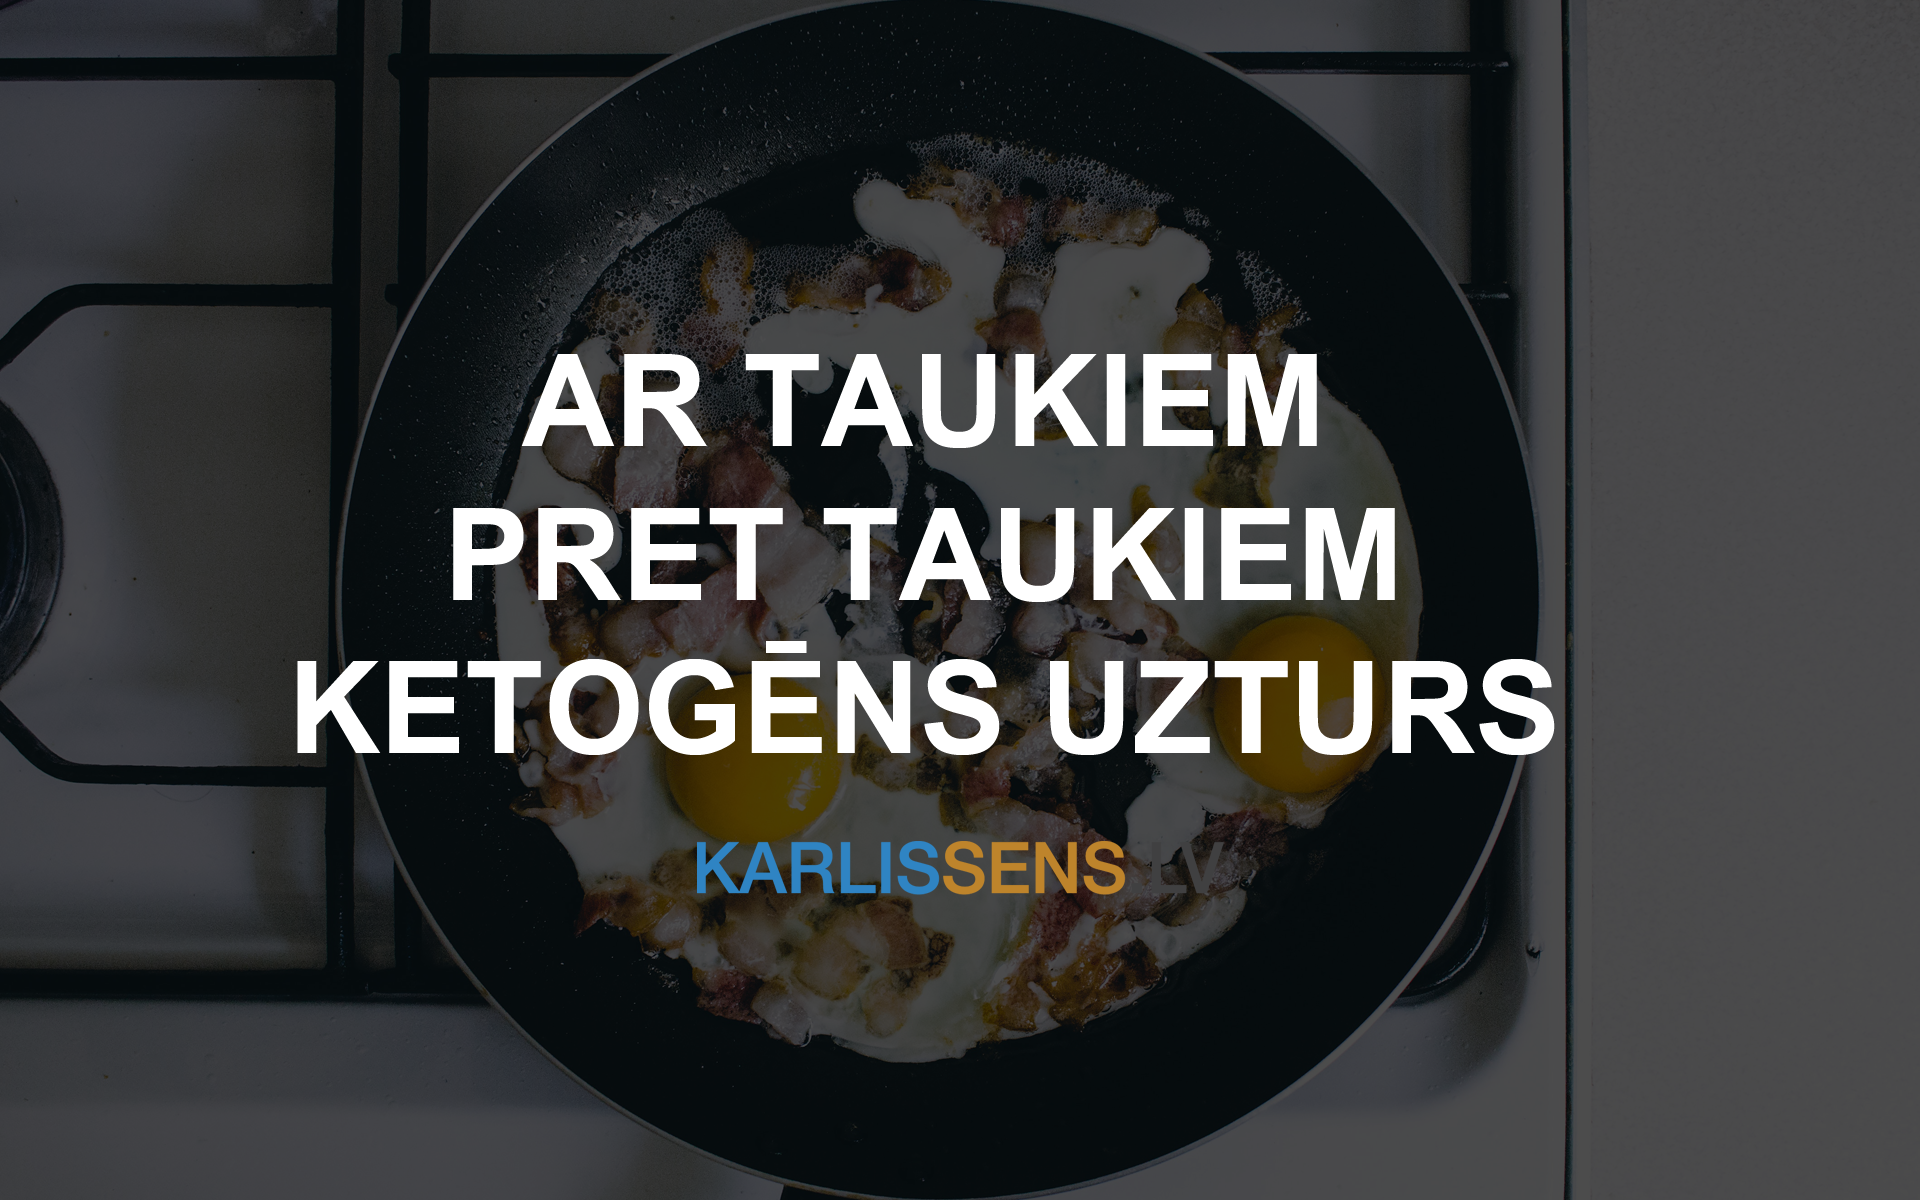 ketogens-uzturs-featured